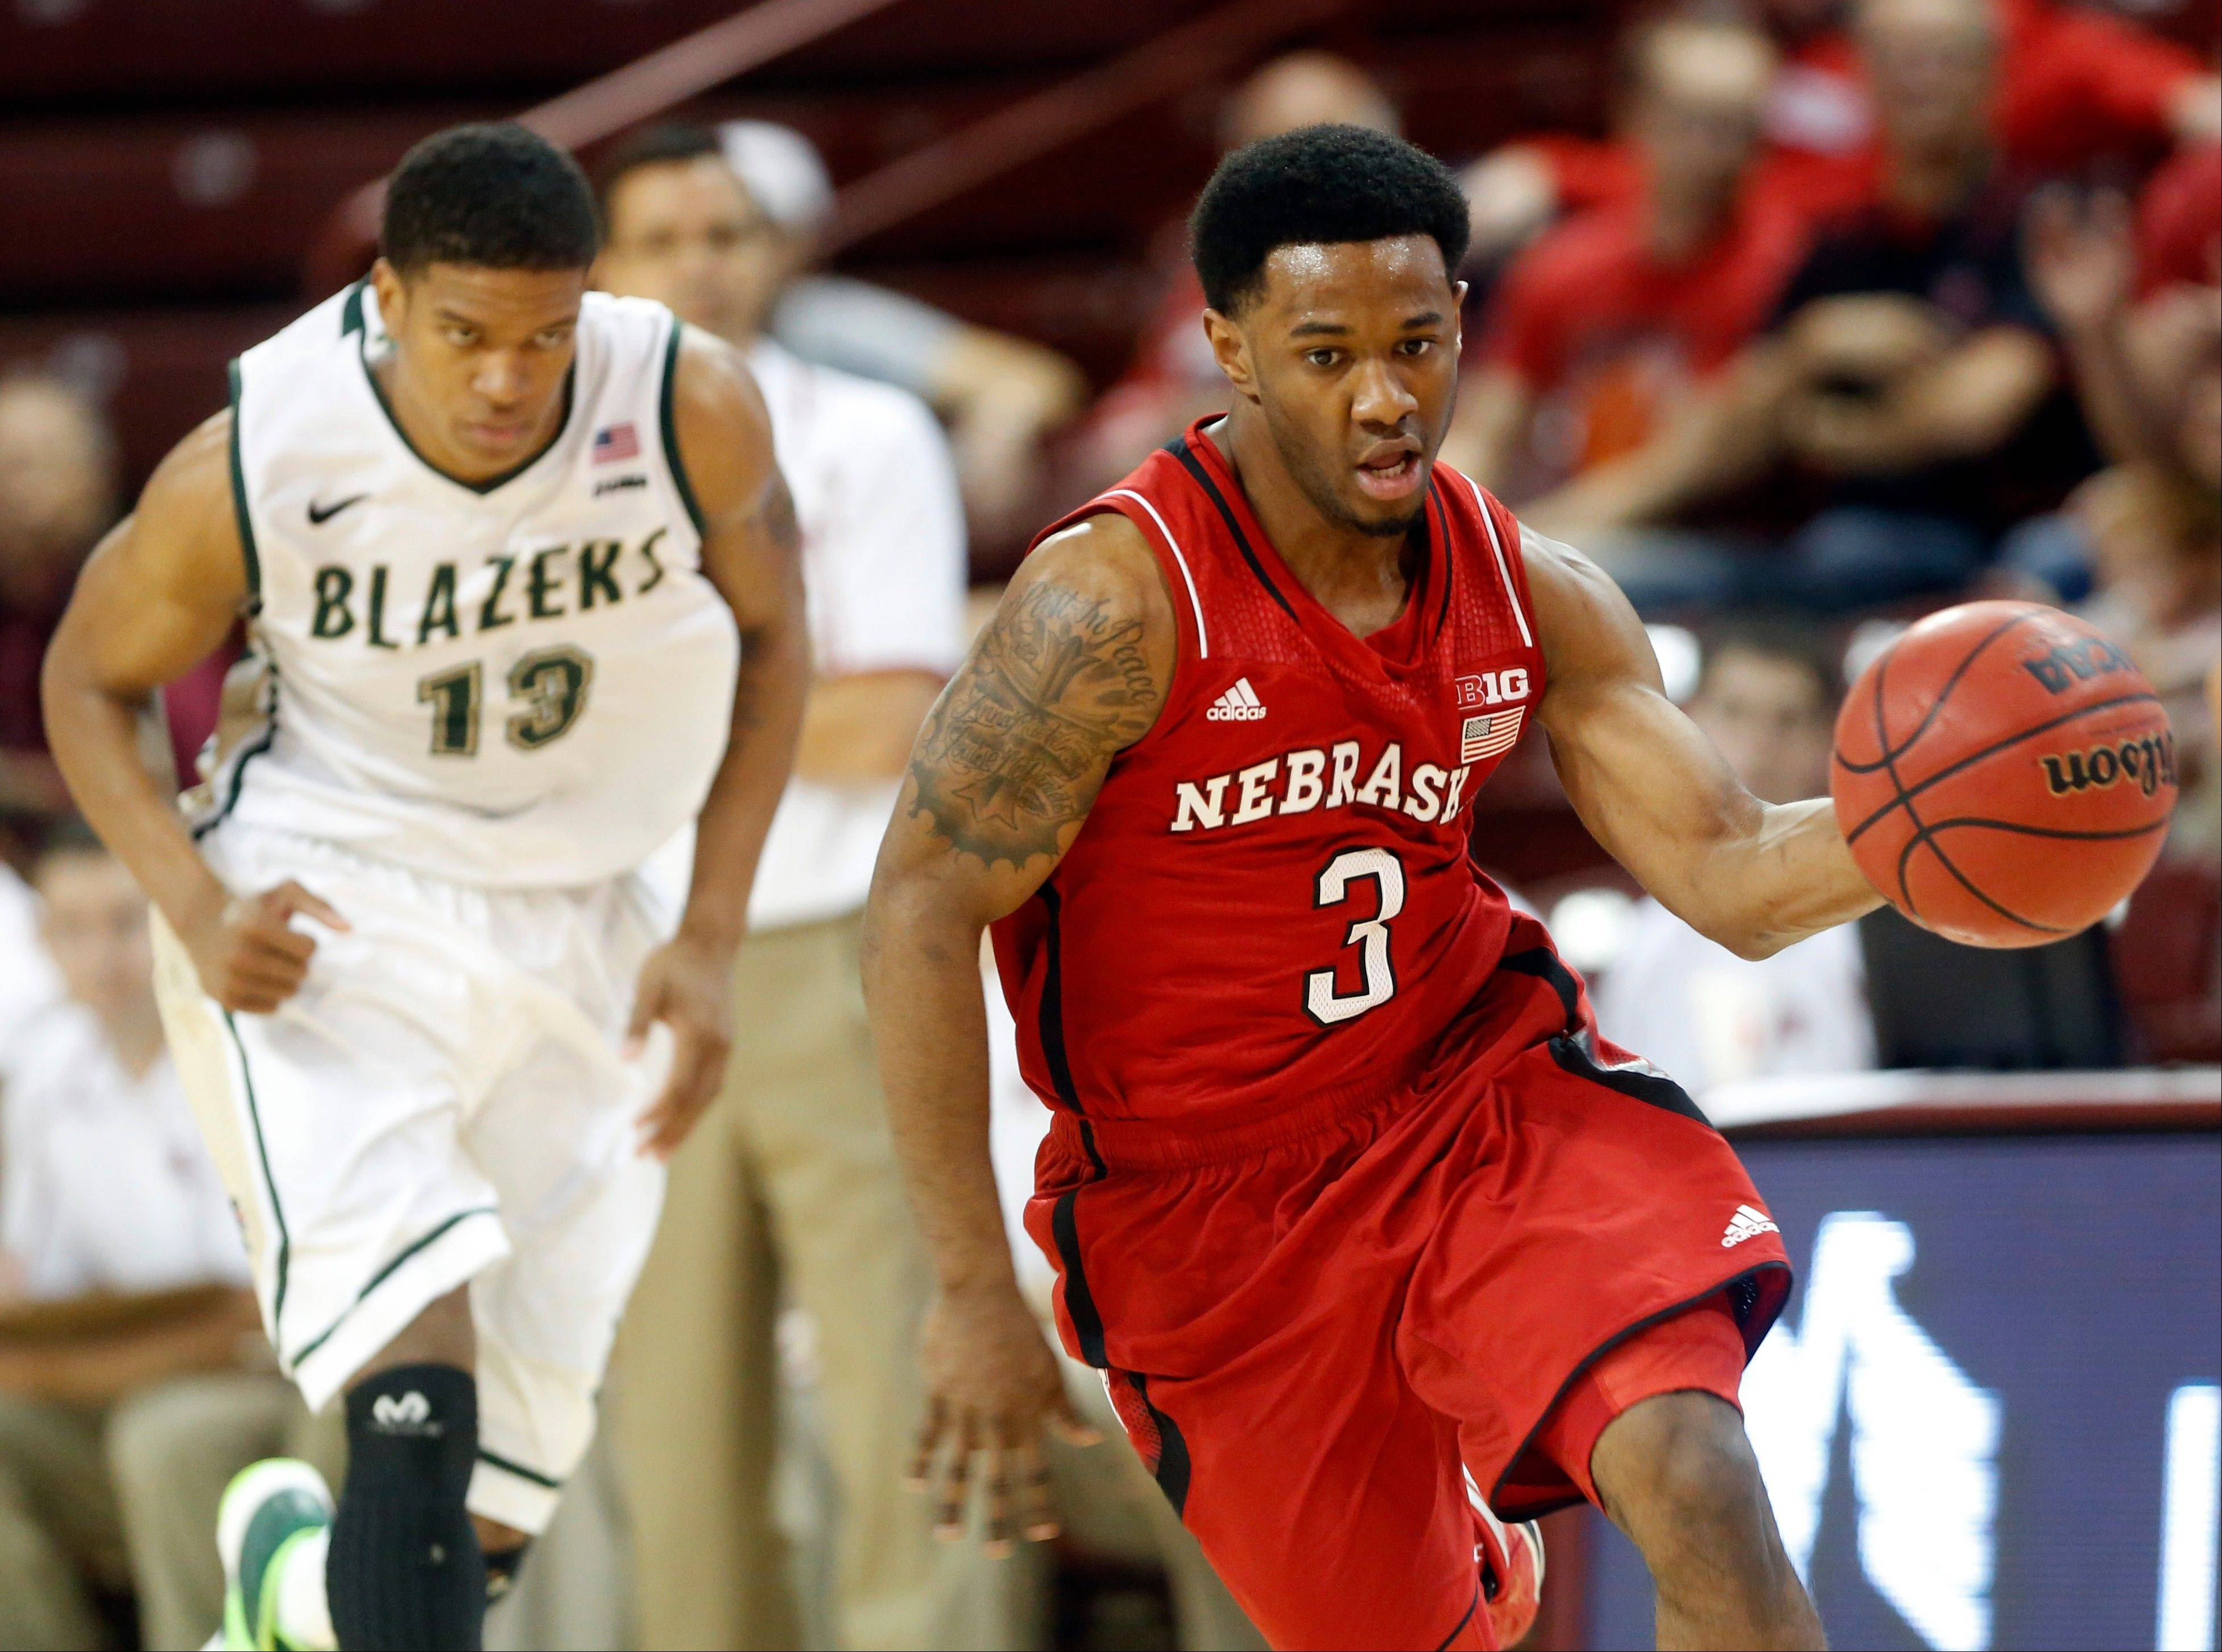 Nebraska�s Benny Parker drives the ball up the court against UAB�s Chad Frazier in the first half Friday at the Charleston Classic tournament in Charleston, S.C..